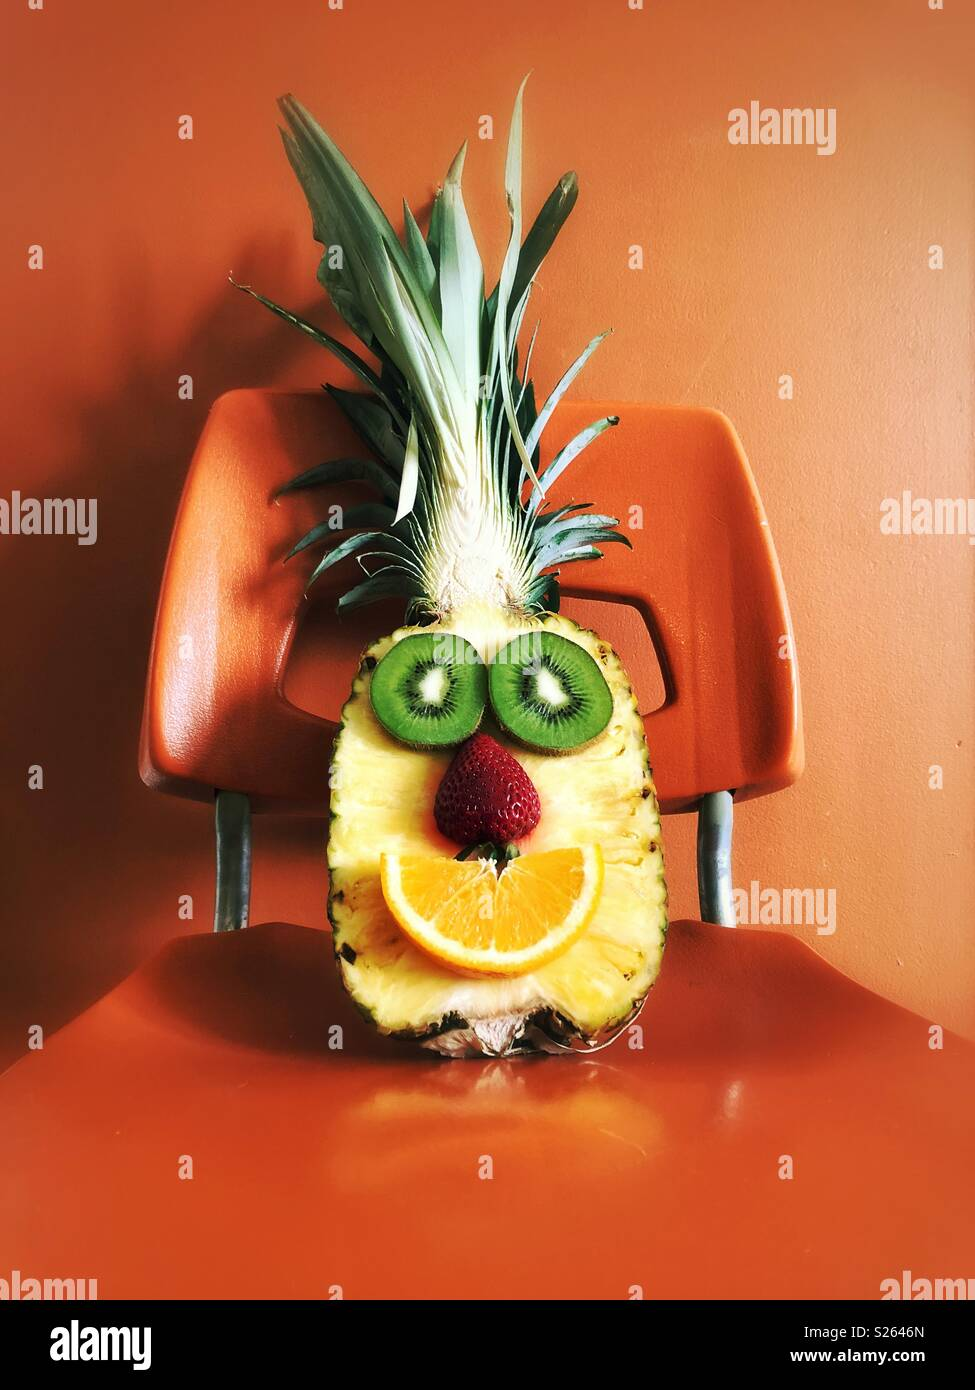 Half pineapple with kiwi slices, strawberry and orange slice made to look like a happy face sitting on an orange chair - Stock Image